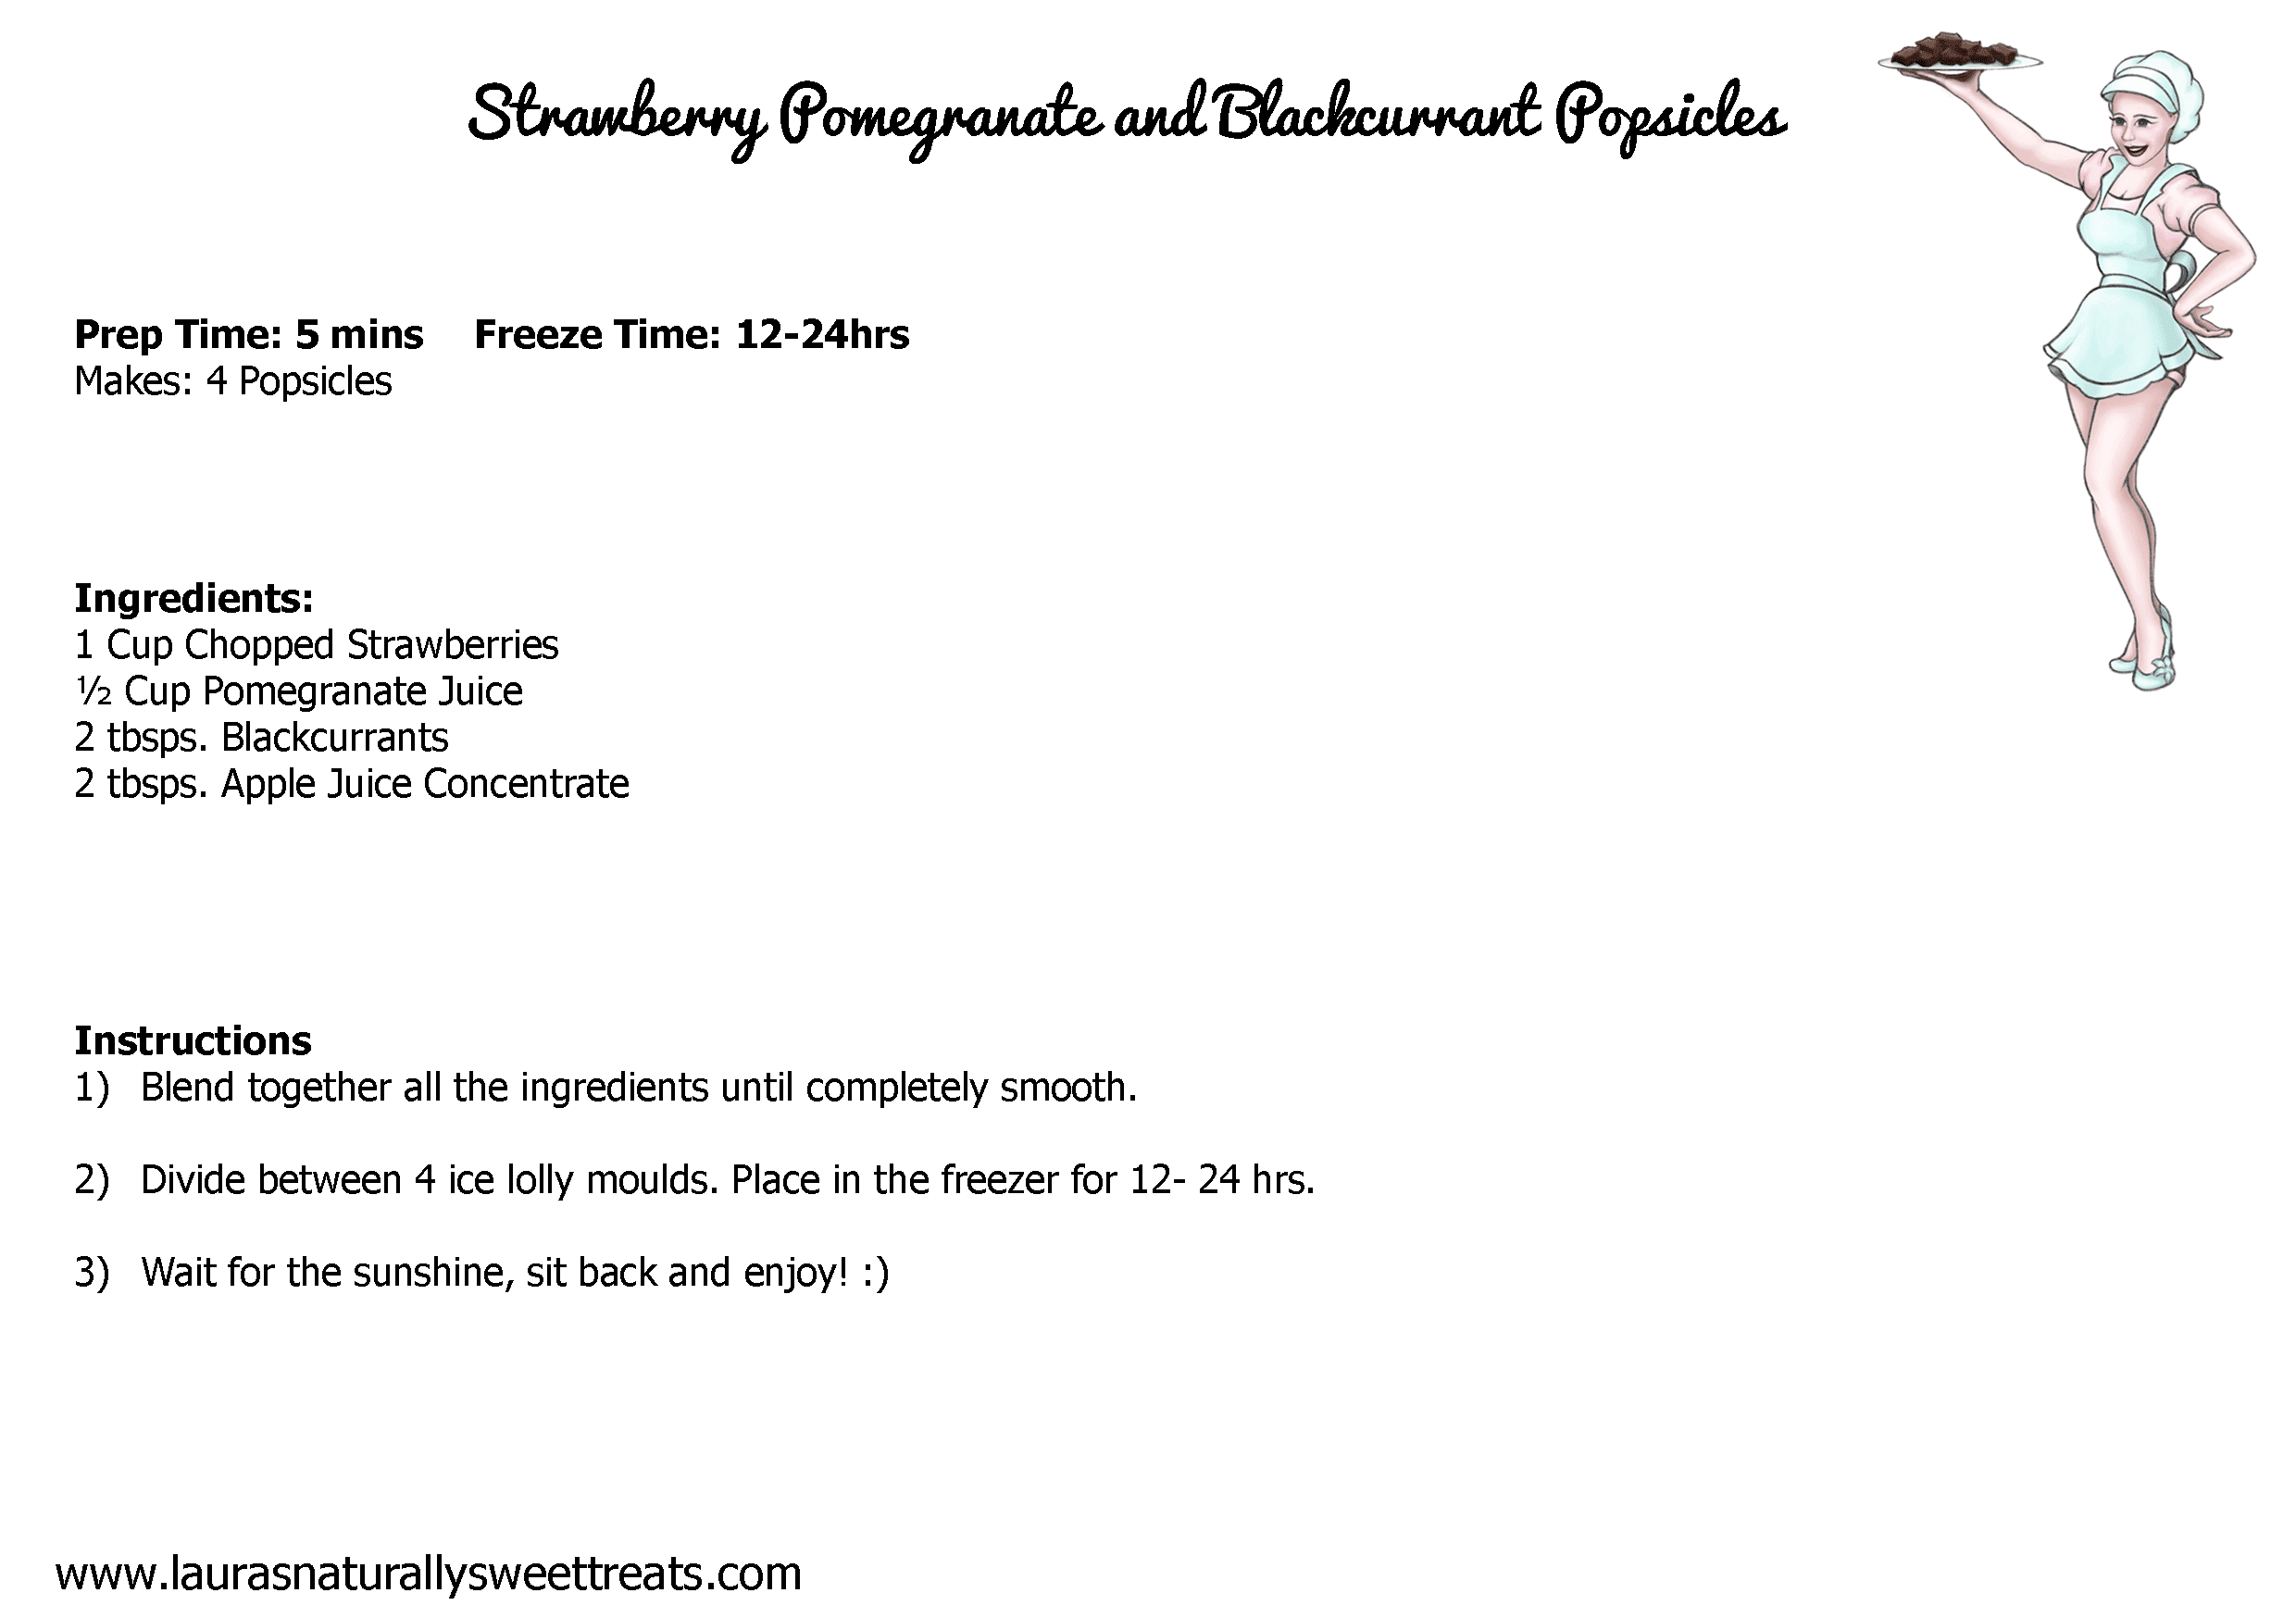 strawberry pomegranate and blackcurrant popsicles recipe card